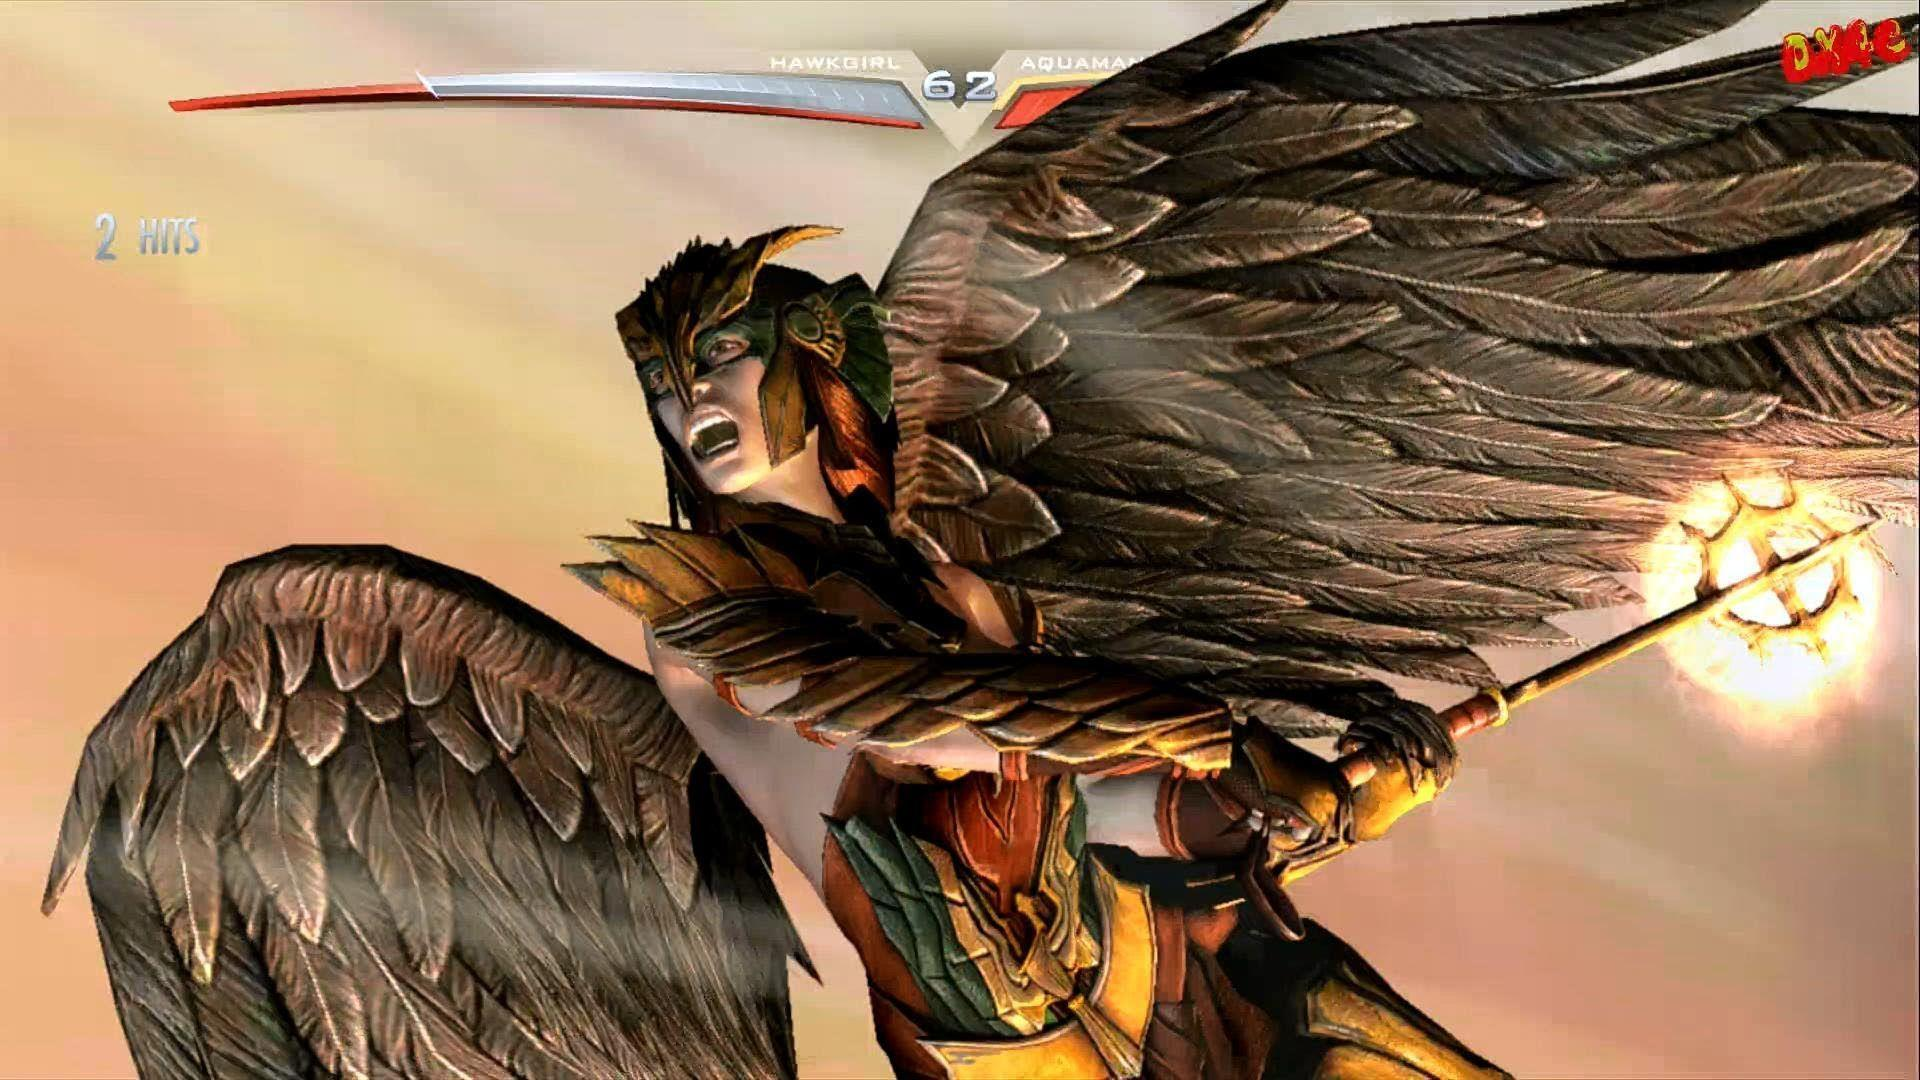 Hawkgirl Injustice Pictures to Pin on Pinterest - PinsDaddy